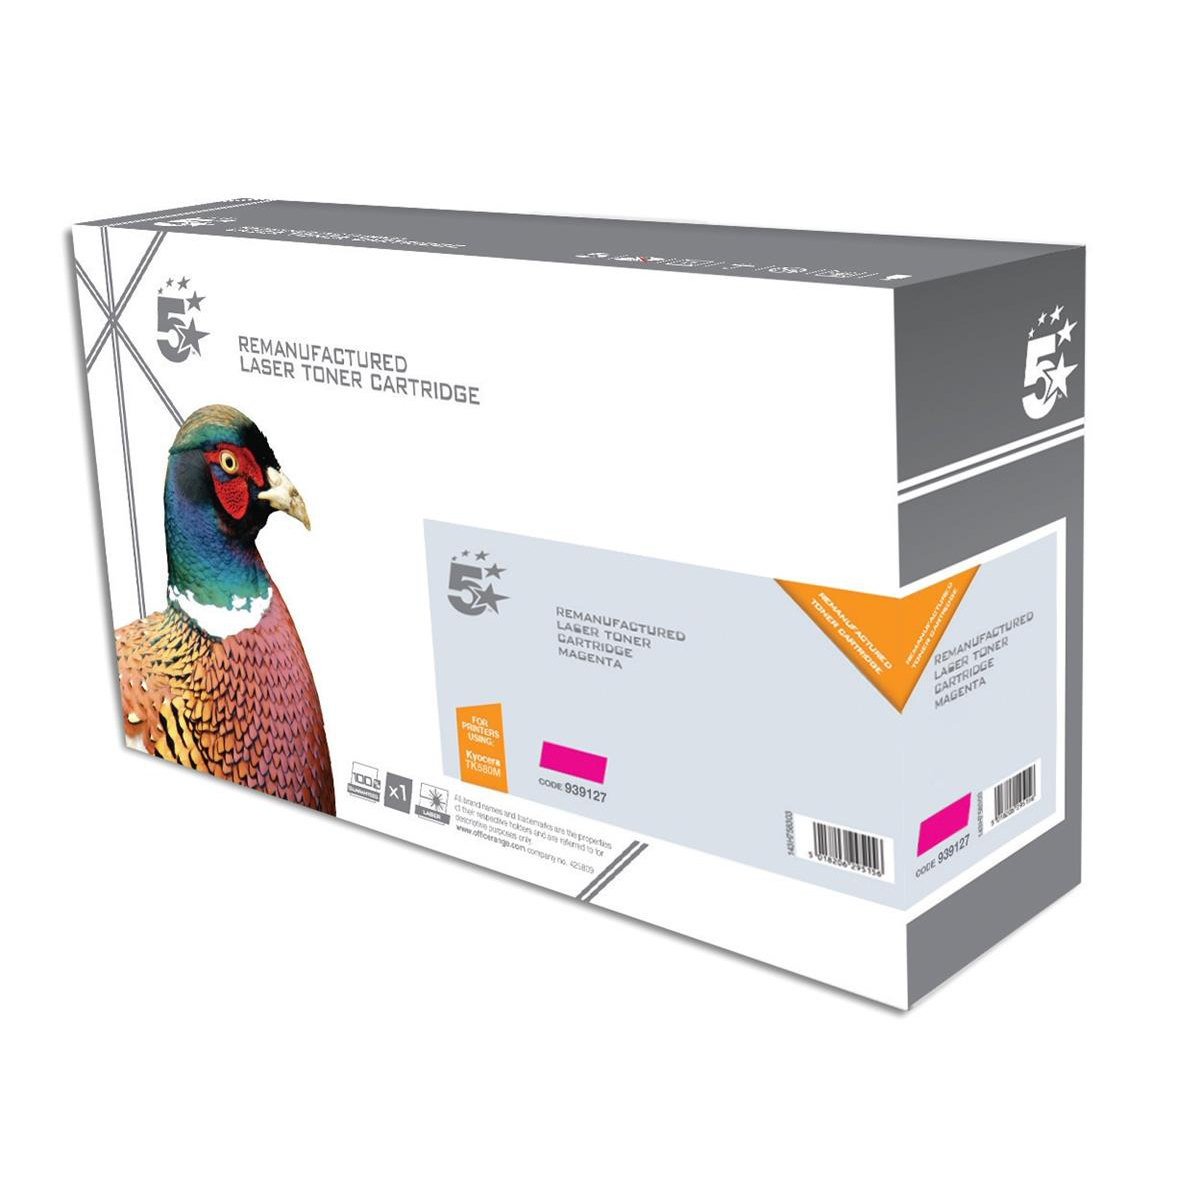 5 Star Office Reman Laser Toner Cartridge Page Life 2800pp Magenta [Kyocera 1T02KTBNL0 Alternative]